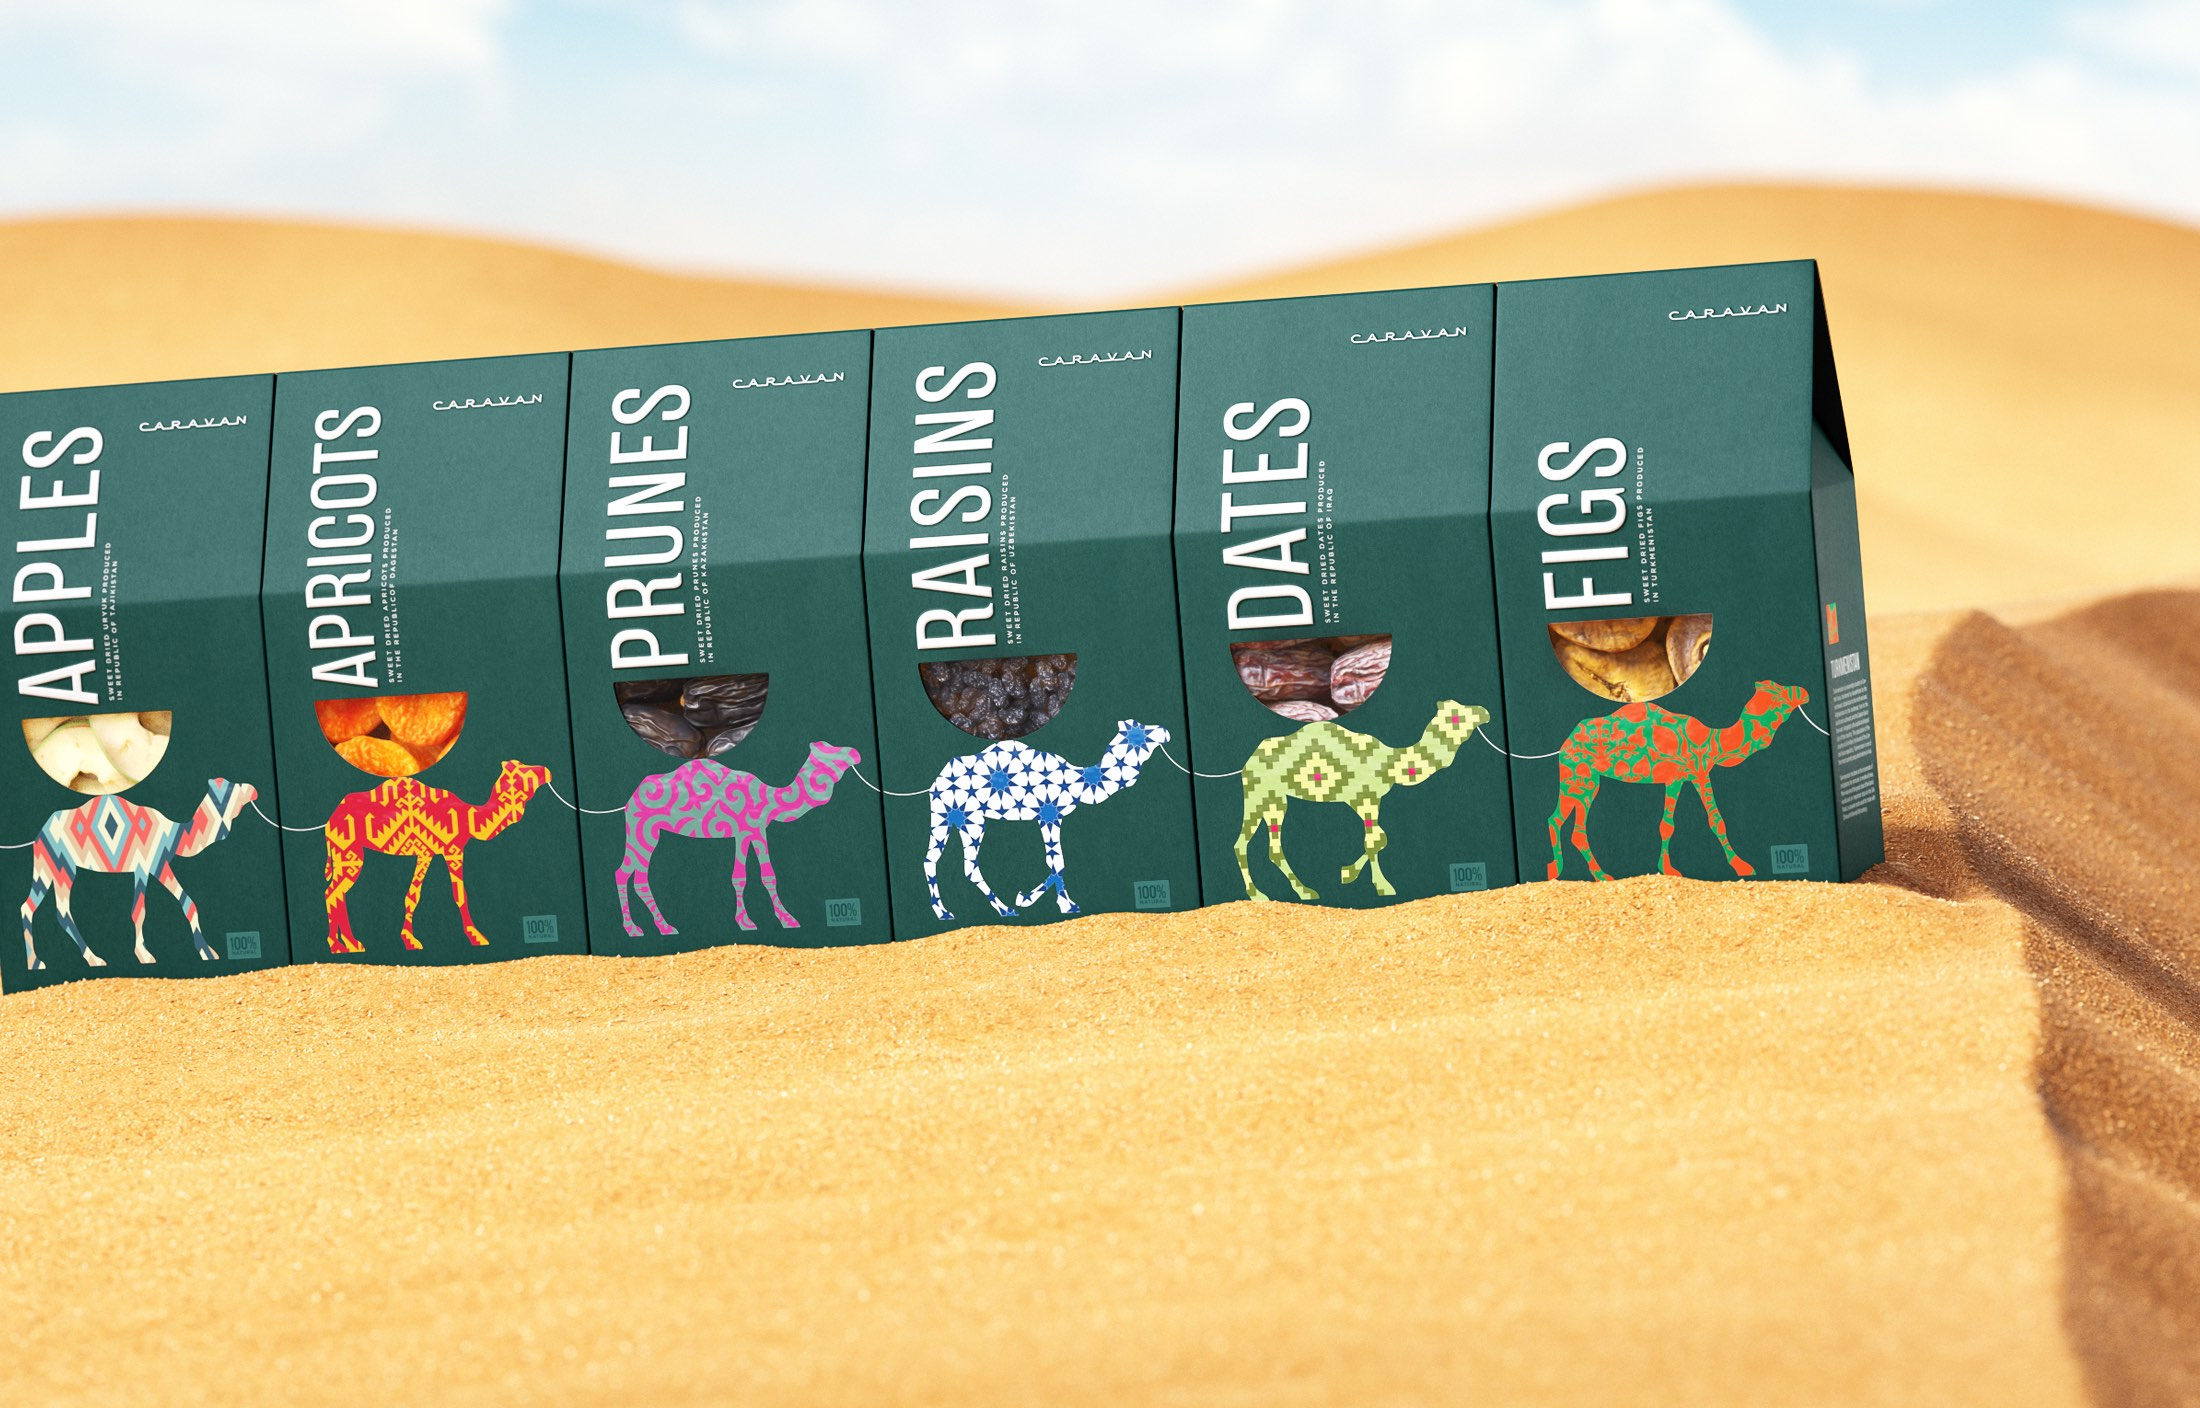 Concept of Packaging for Nuts and Dried Fruit Designed by Ohmybrand